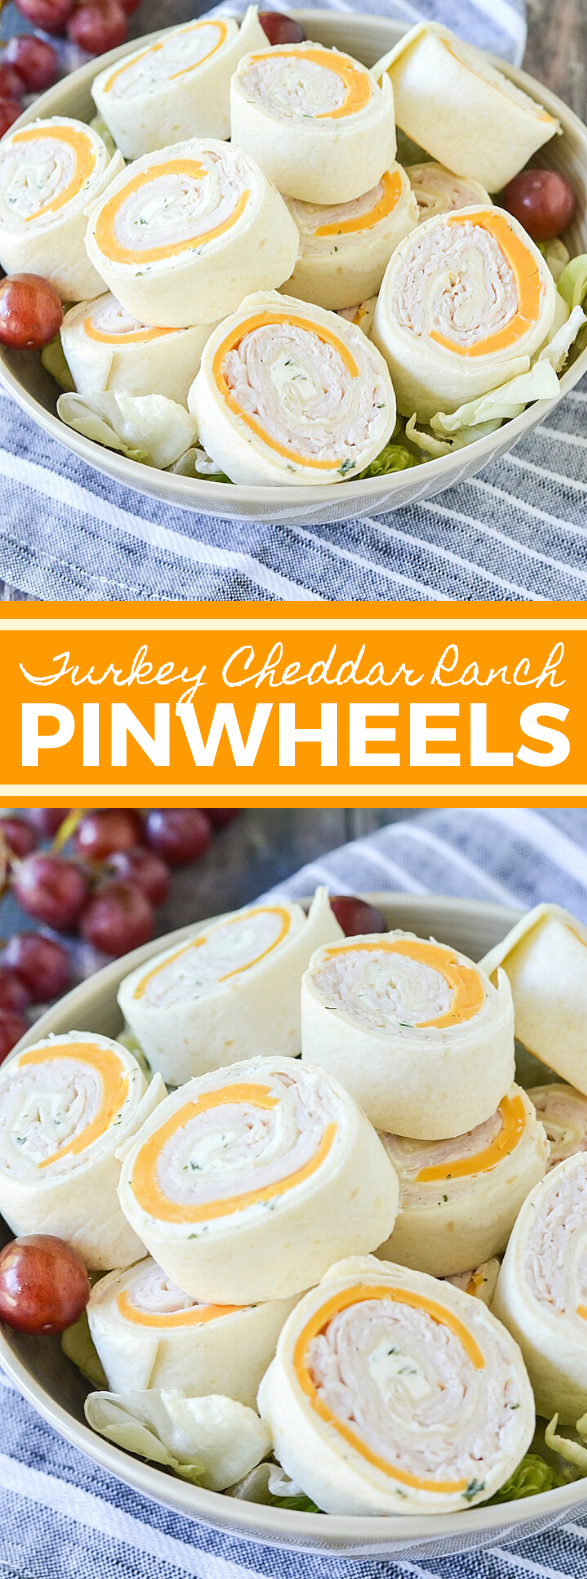 TURKEY CHEDDAR RANCH PINWHEELS #lunch #snack